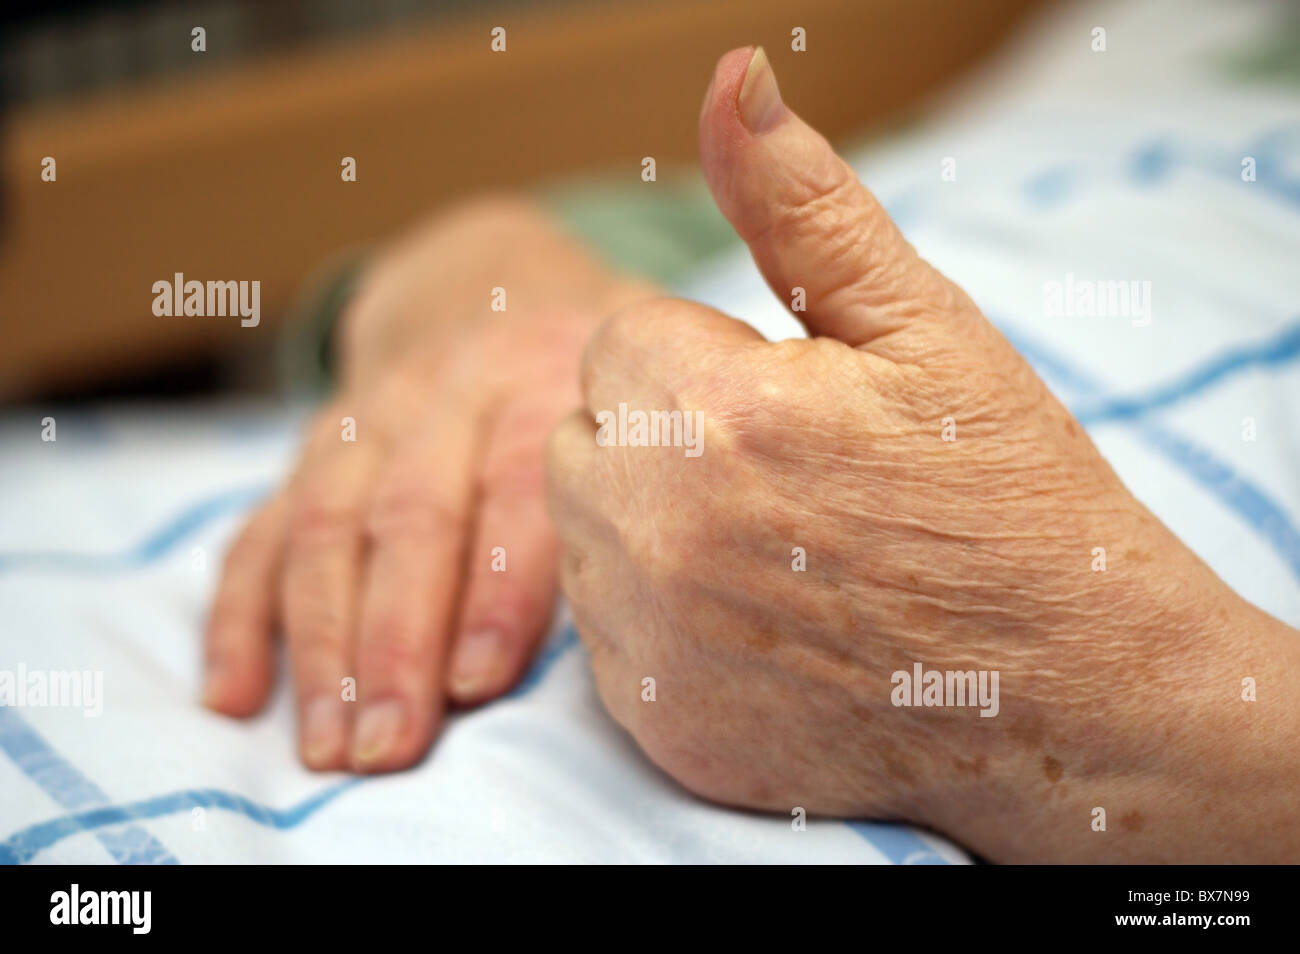 Hands of a care-dependent person making positive gesture. - Stock Image